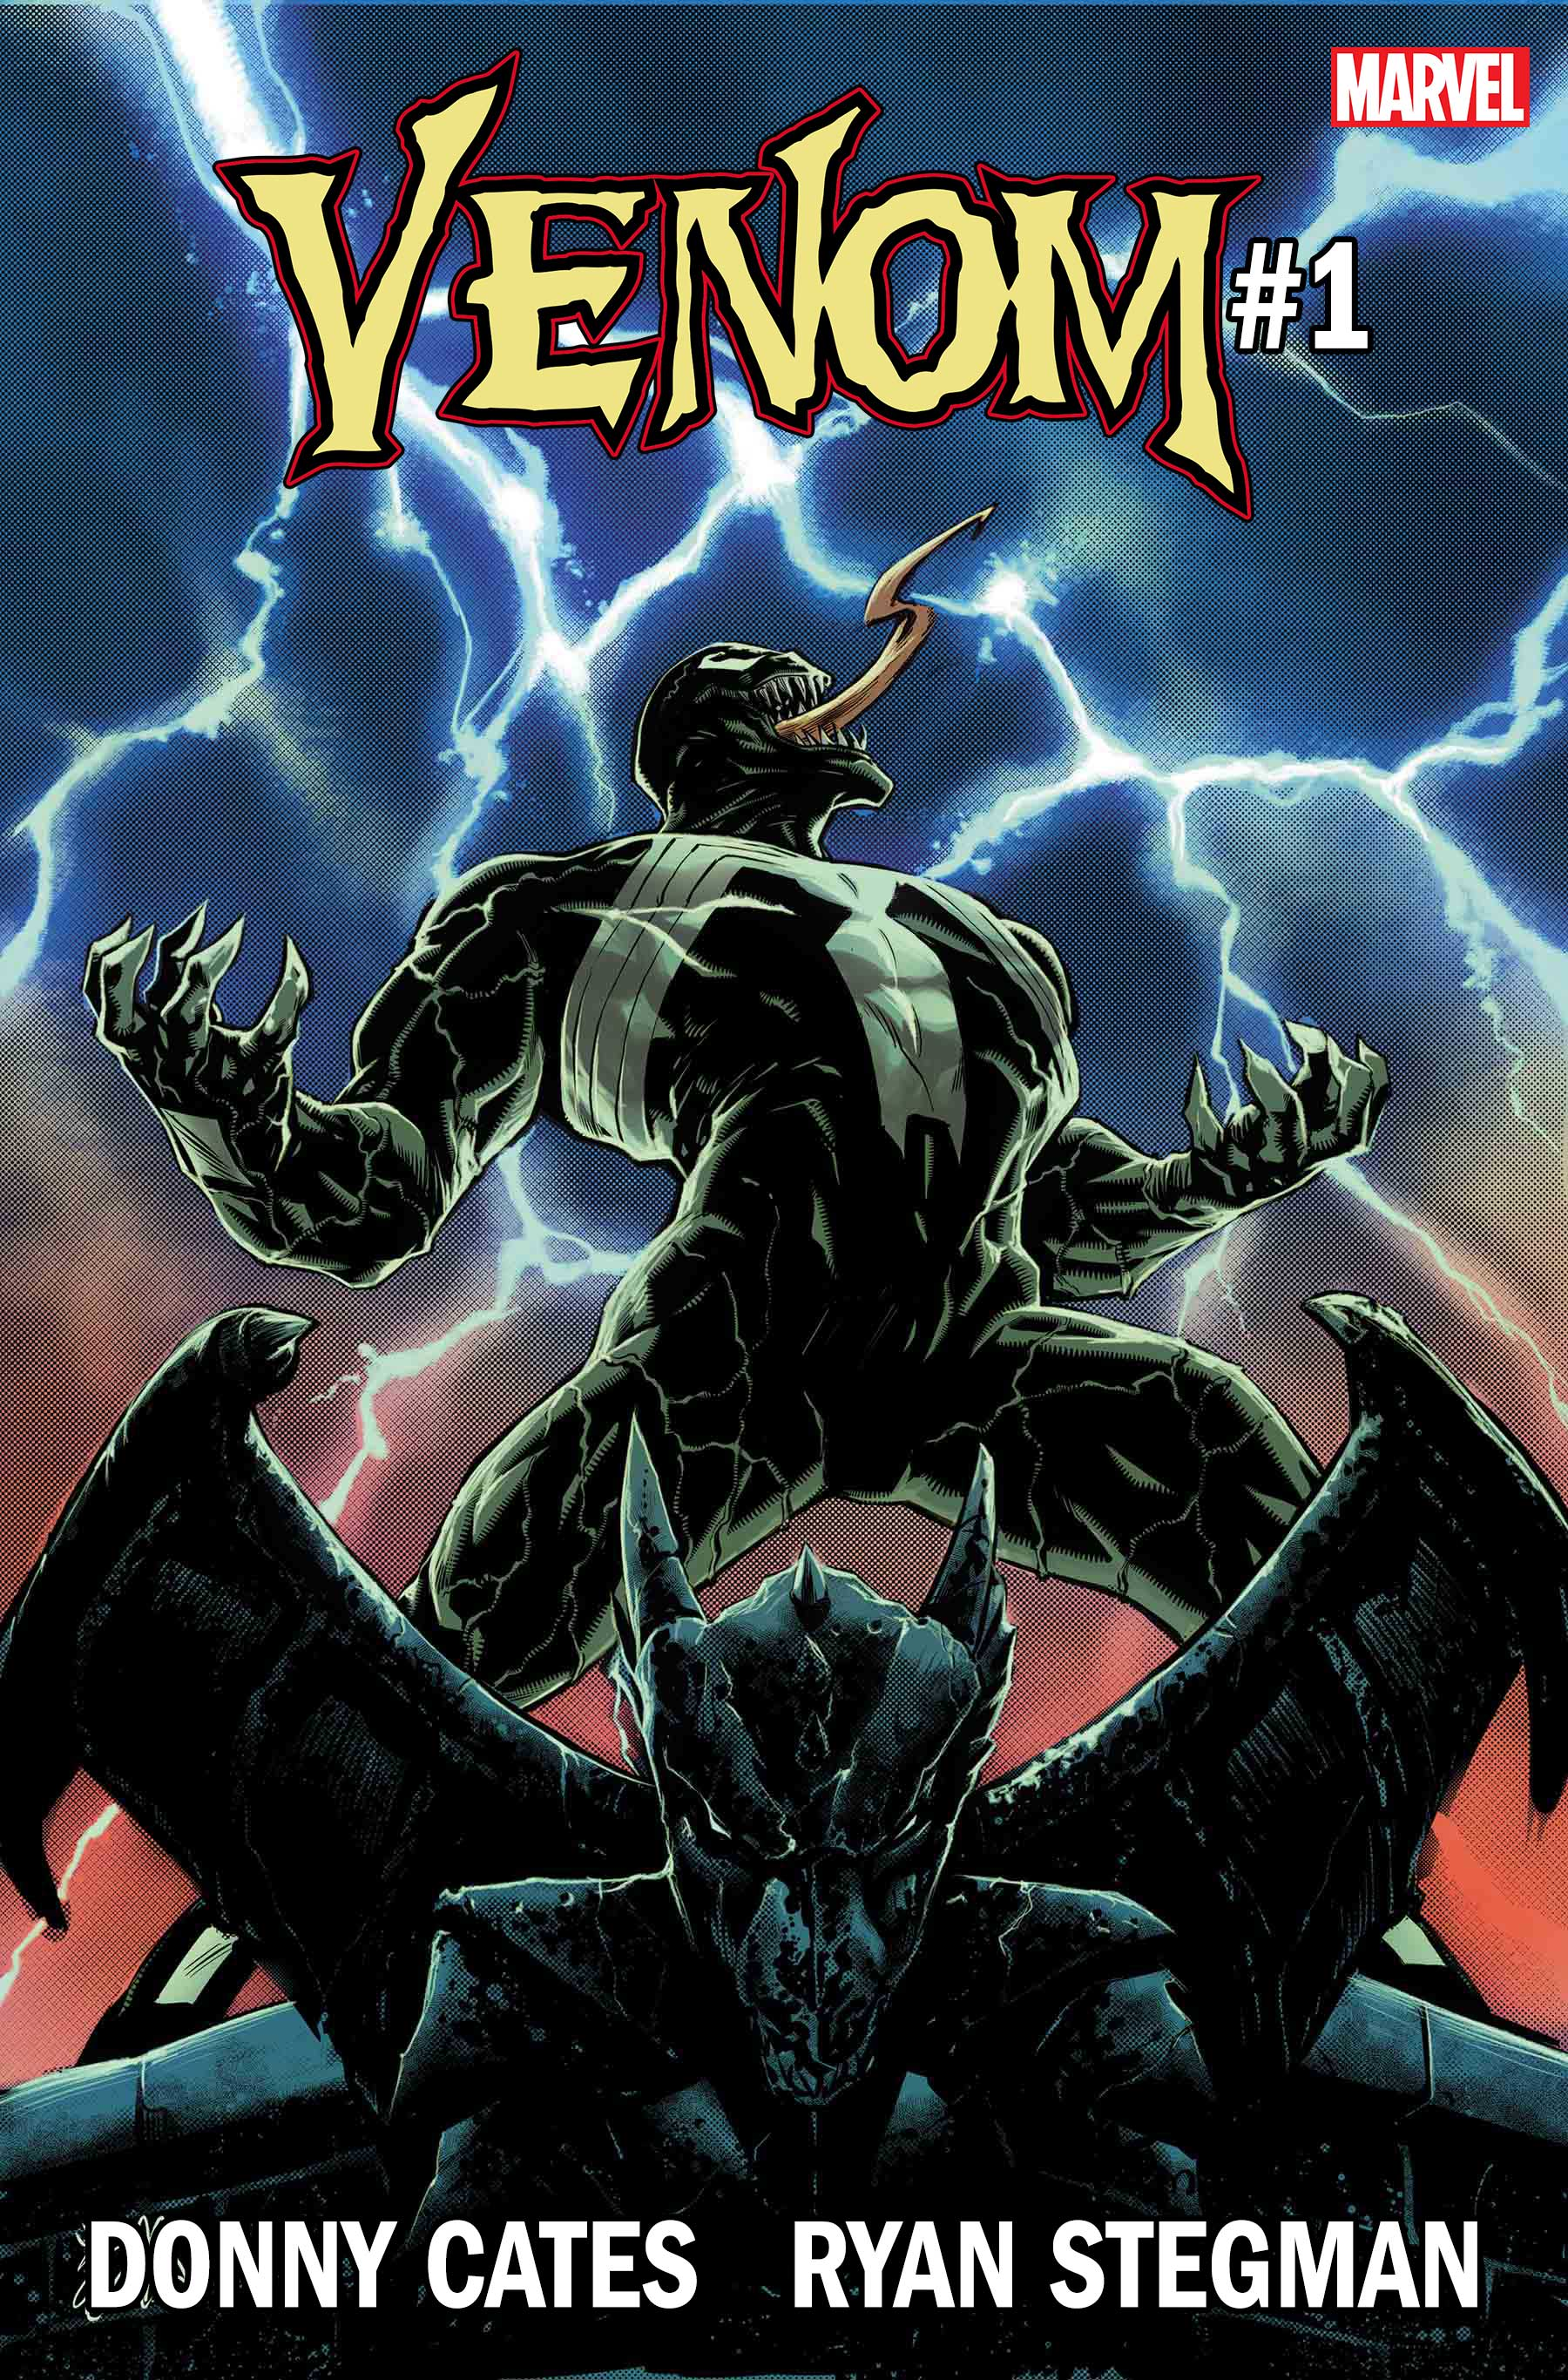 Venom gets a new beginning and creative team Donny Cates and Ryan Stegman